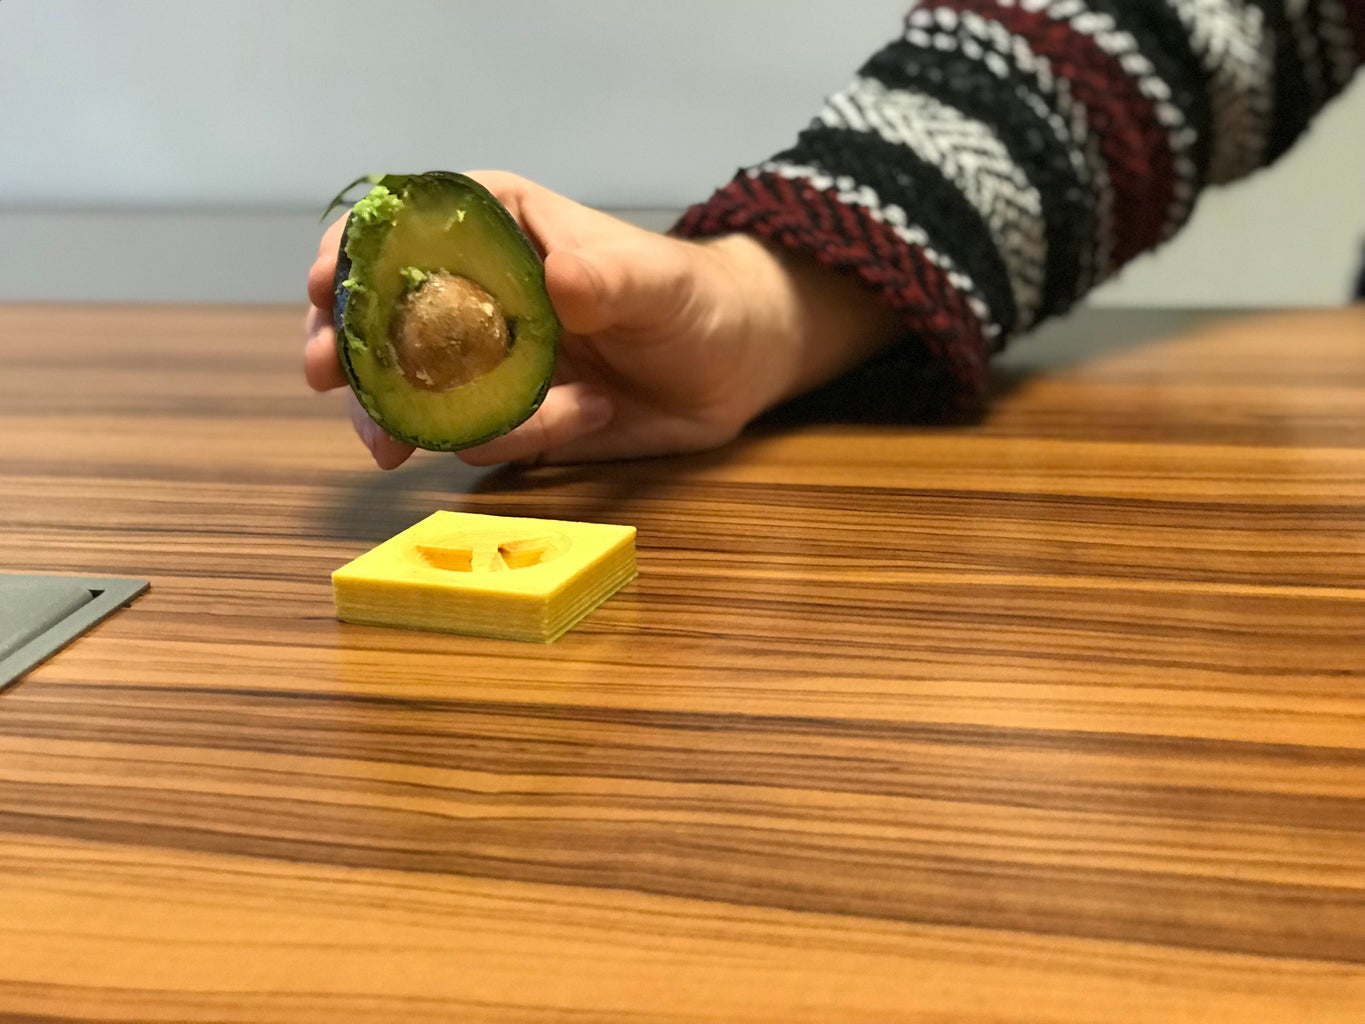 Place Avocado Onto Pitting Device and Twist Clockwise